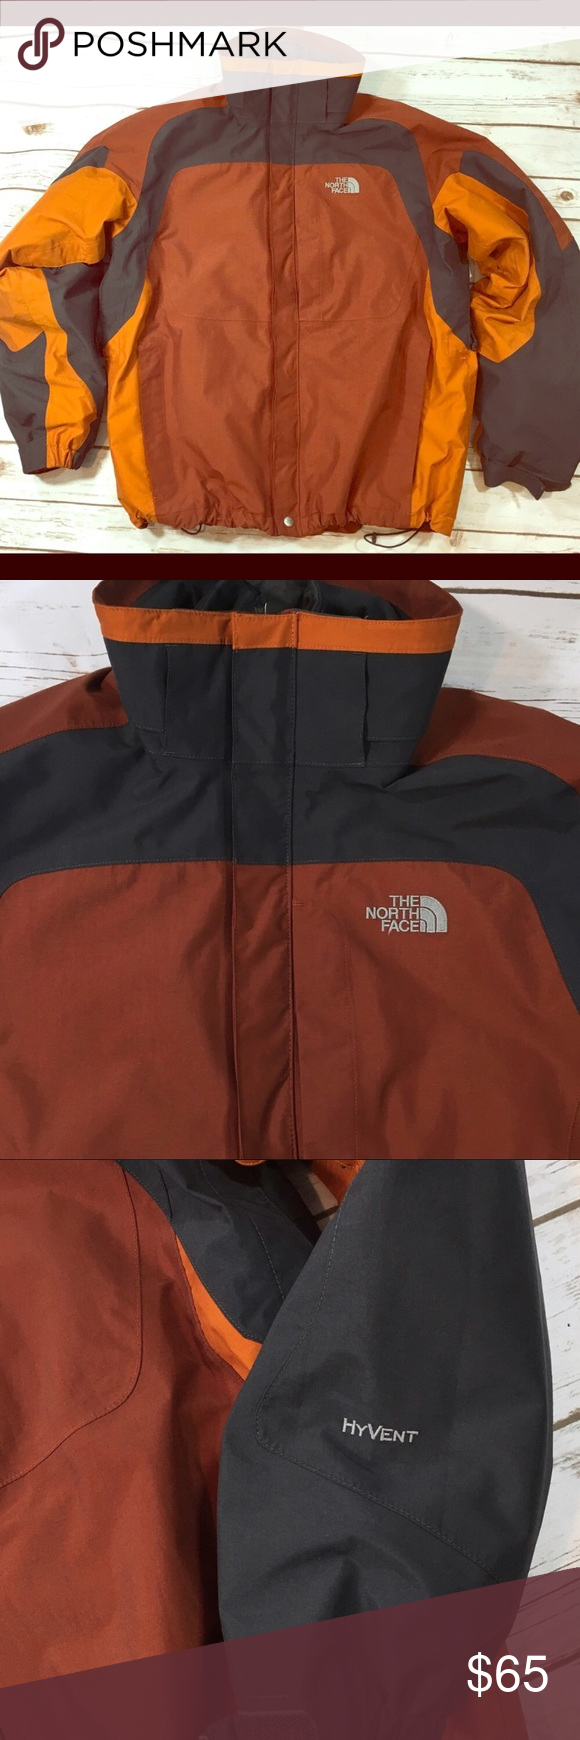 Men S Large The North Face Hyvent Jacket North Face Hyvent Jacket Jackets North Face Hyvent [ 1740 x 580 Pixel ]